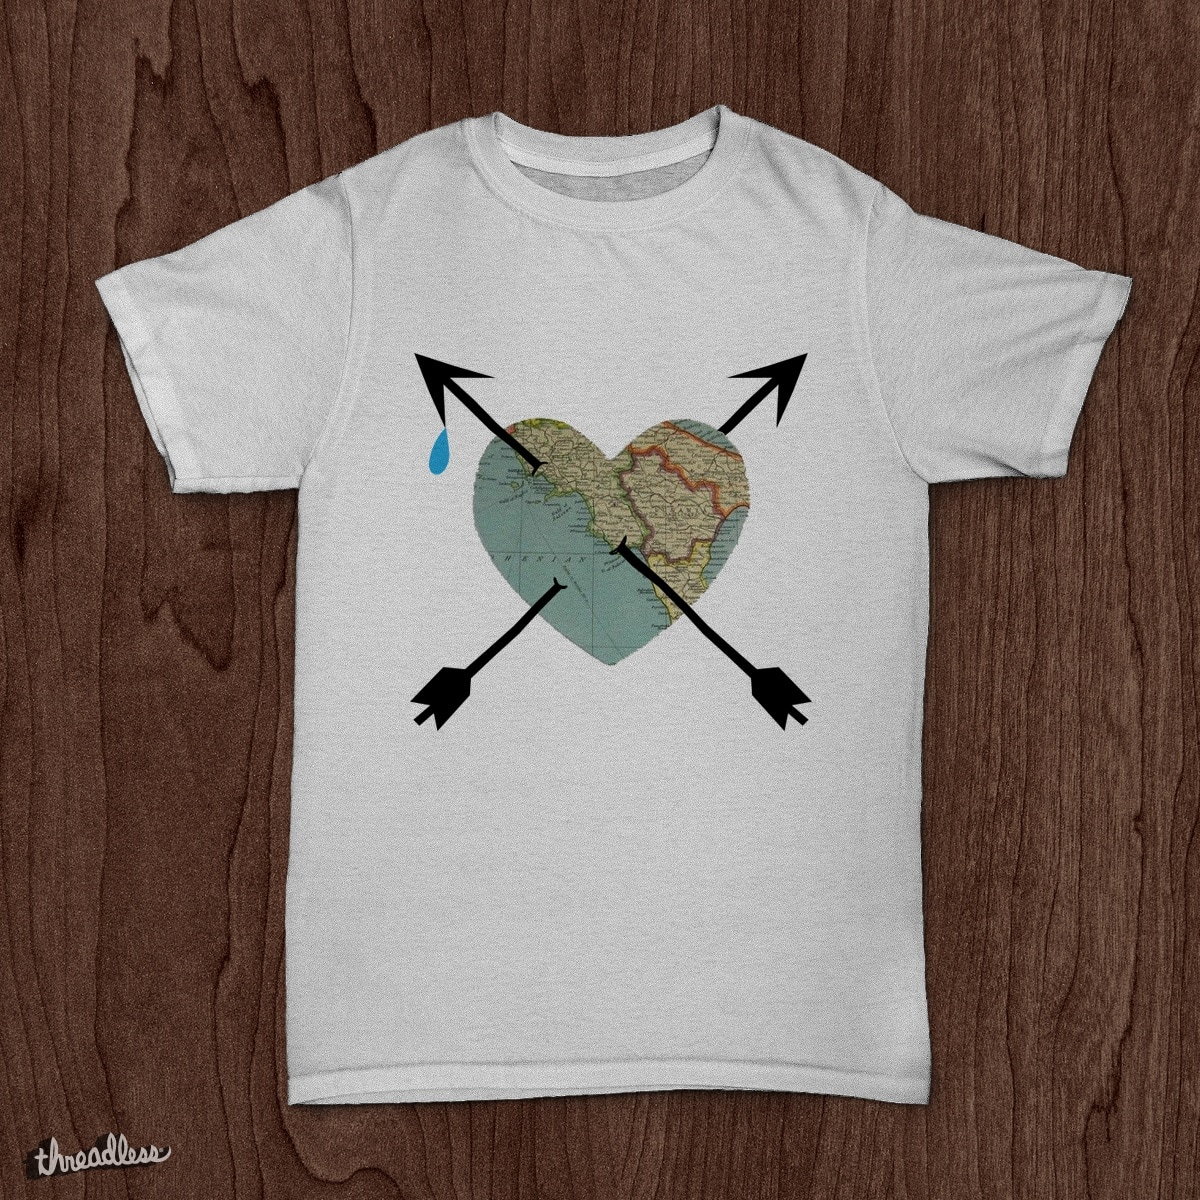 Dying World by ATDesigns on Threadless